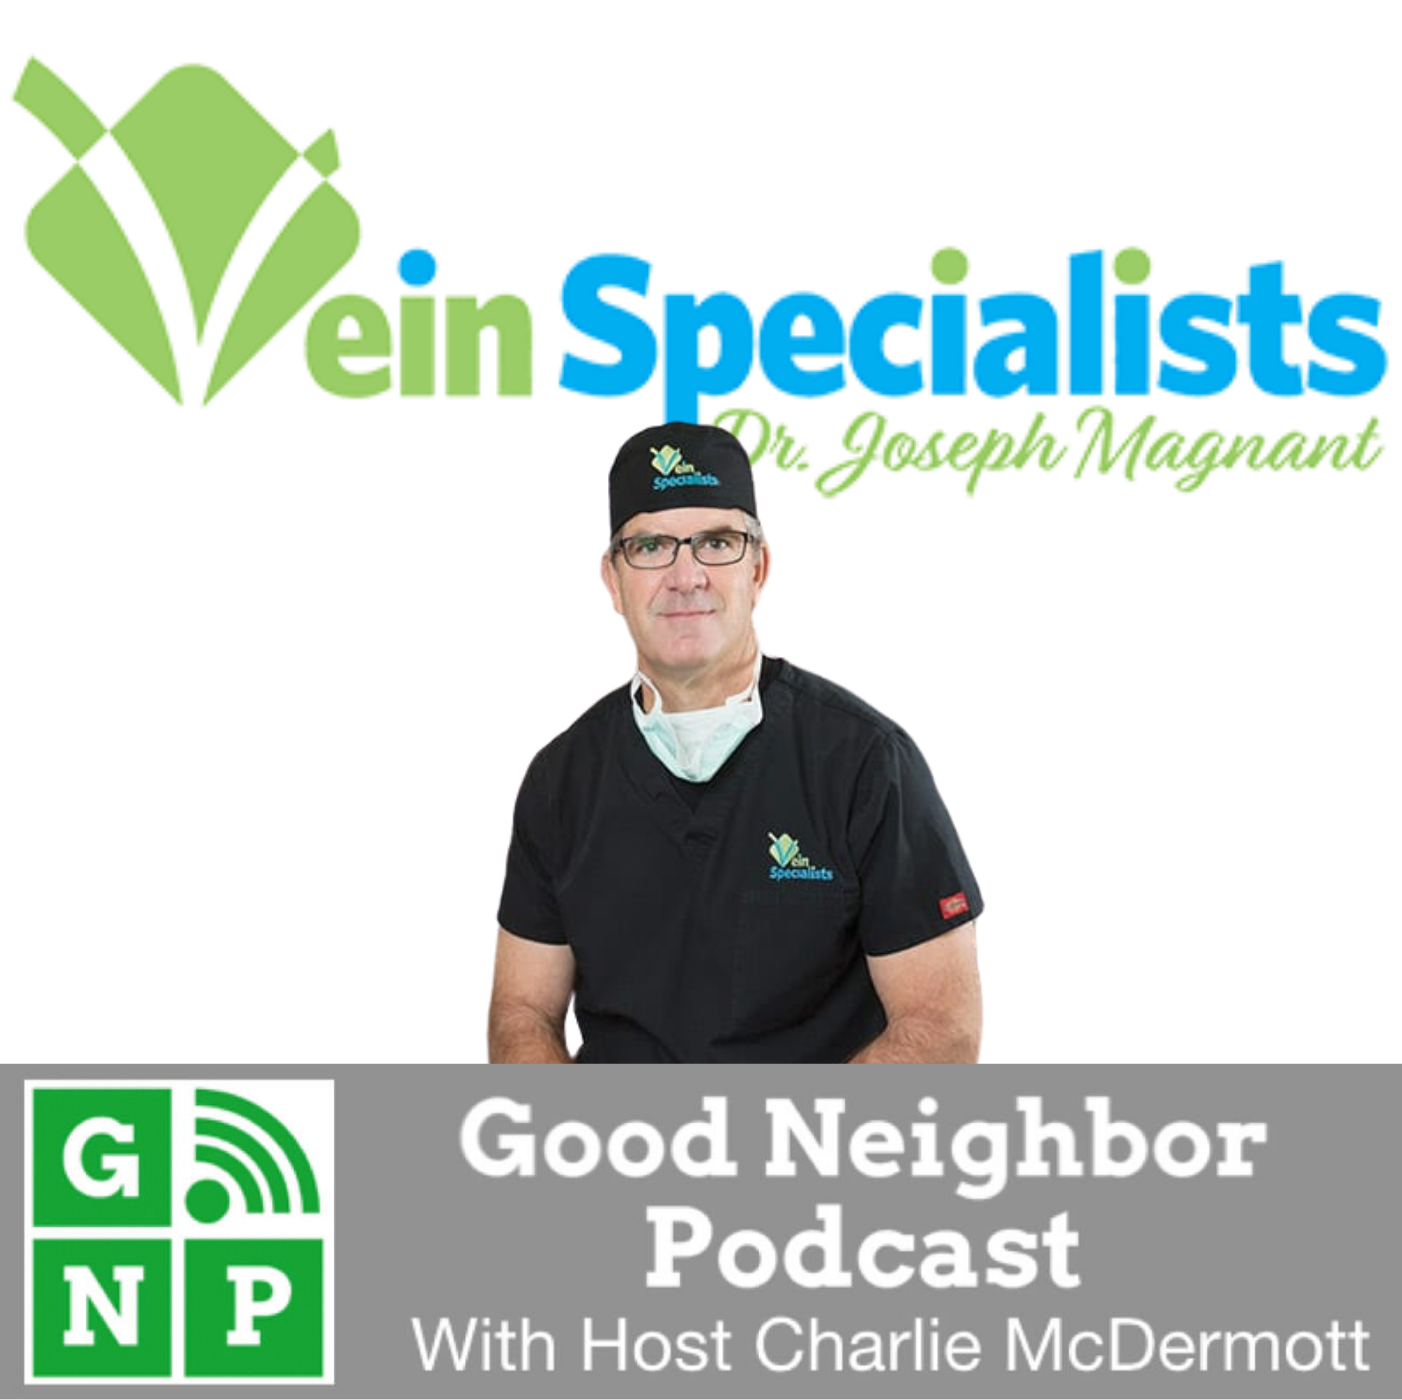 Good Neighbor Podcast with Vein Specialists